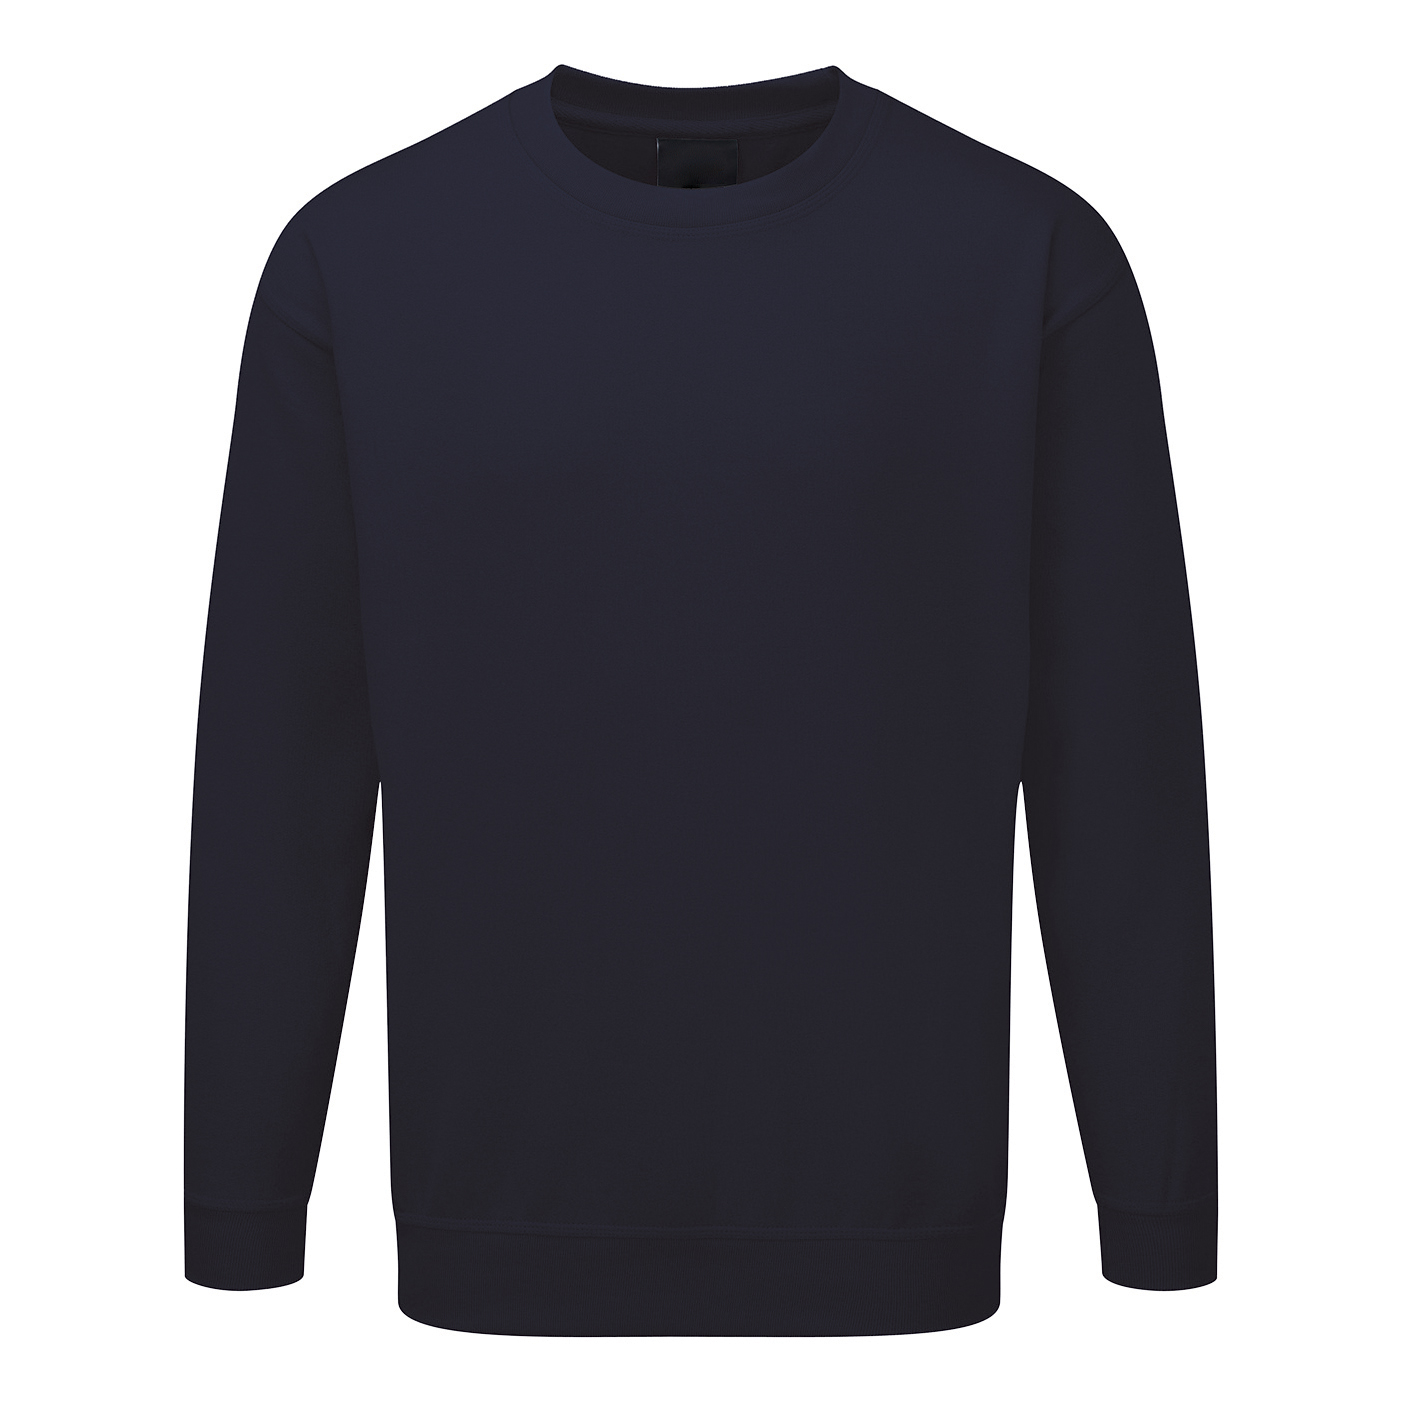 ST Sweatshirt Polyester/Cotton Fabric with Crew Neck XXXXLarge Navy Ref 56697 *Approx 3 Day Leadtime*